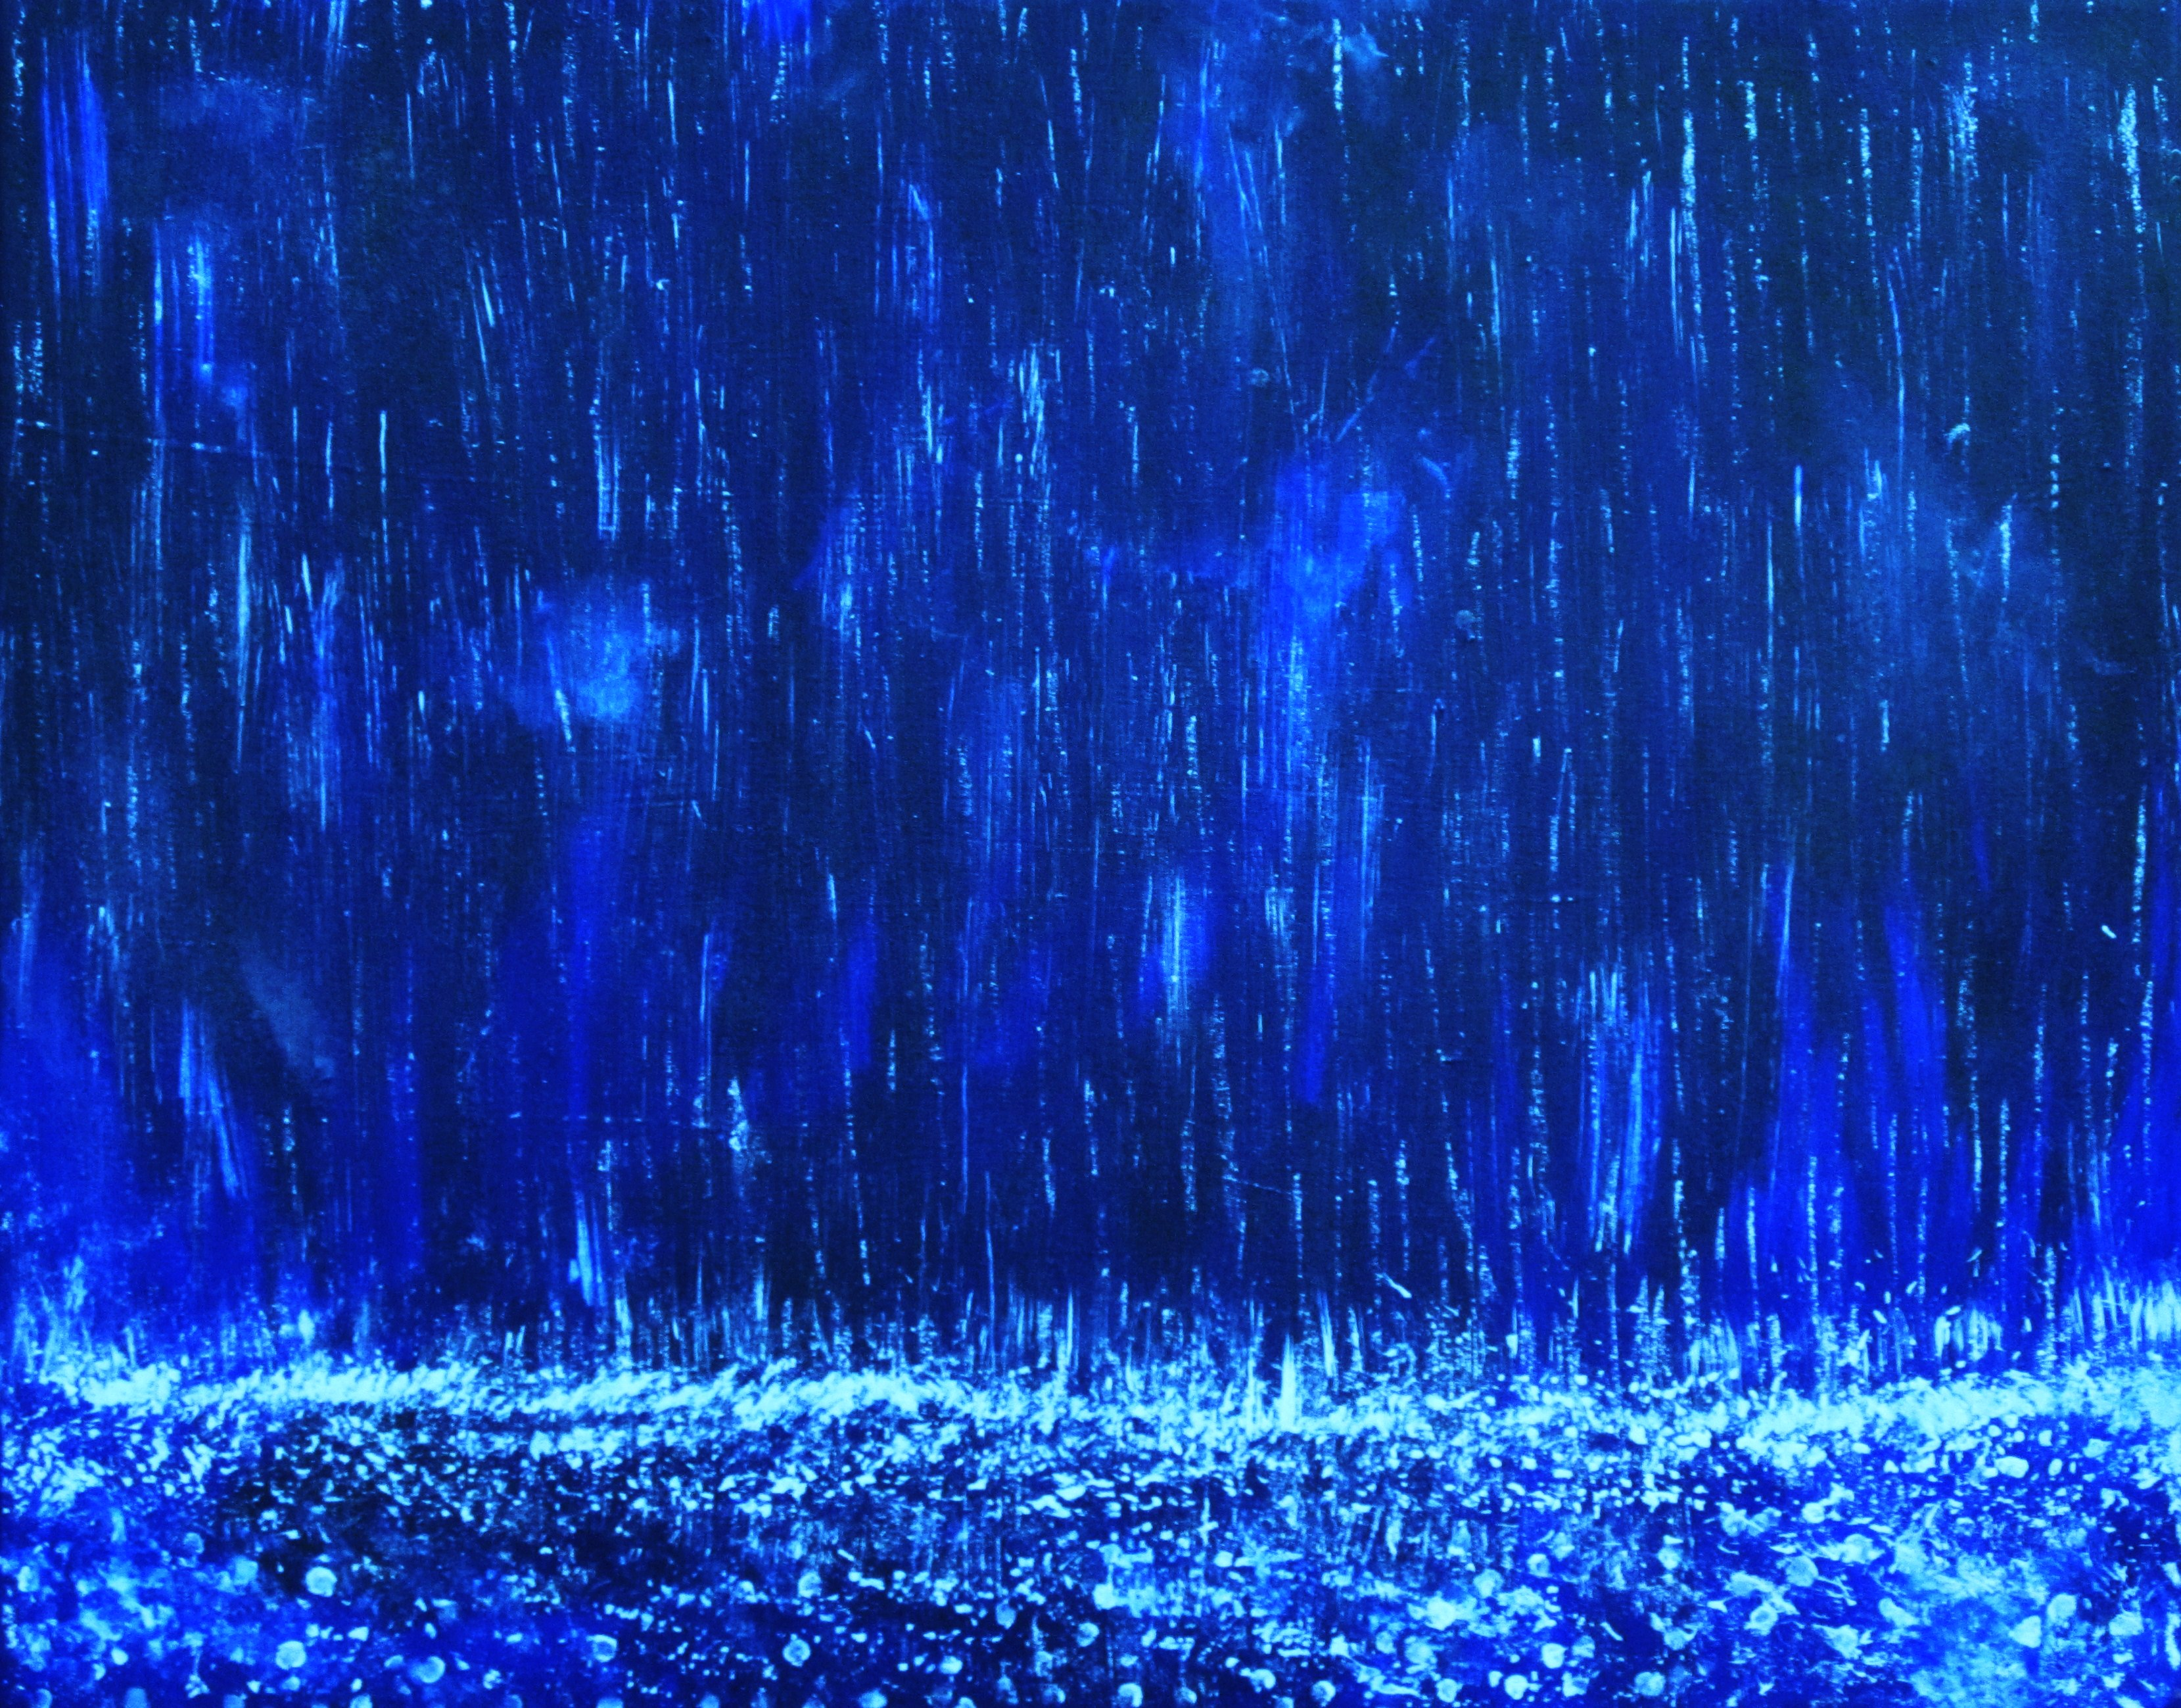 Falling Rain Background Images Pictures   Becuo 3318x2598